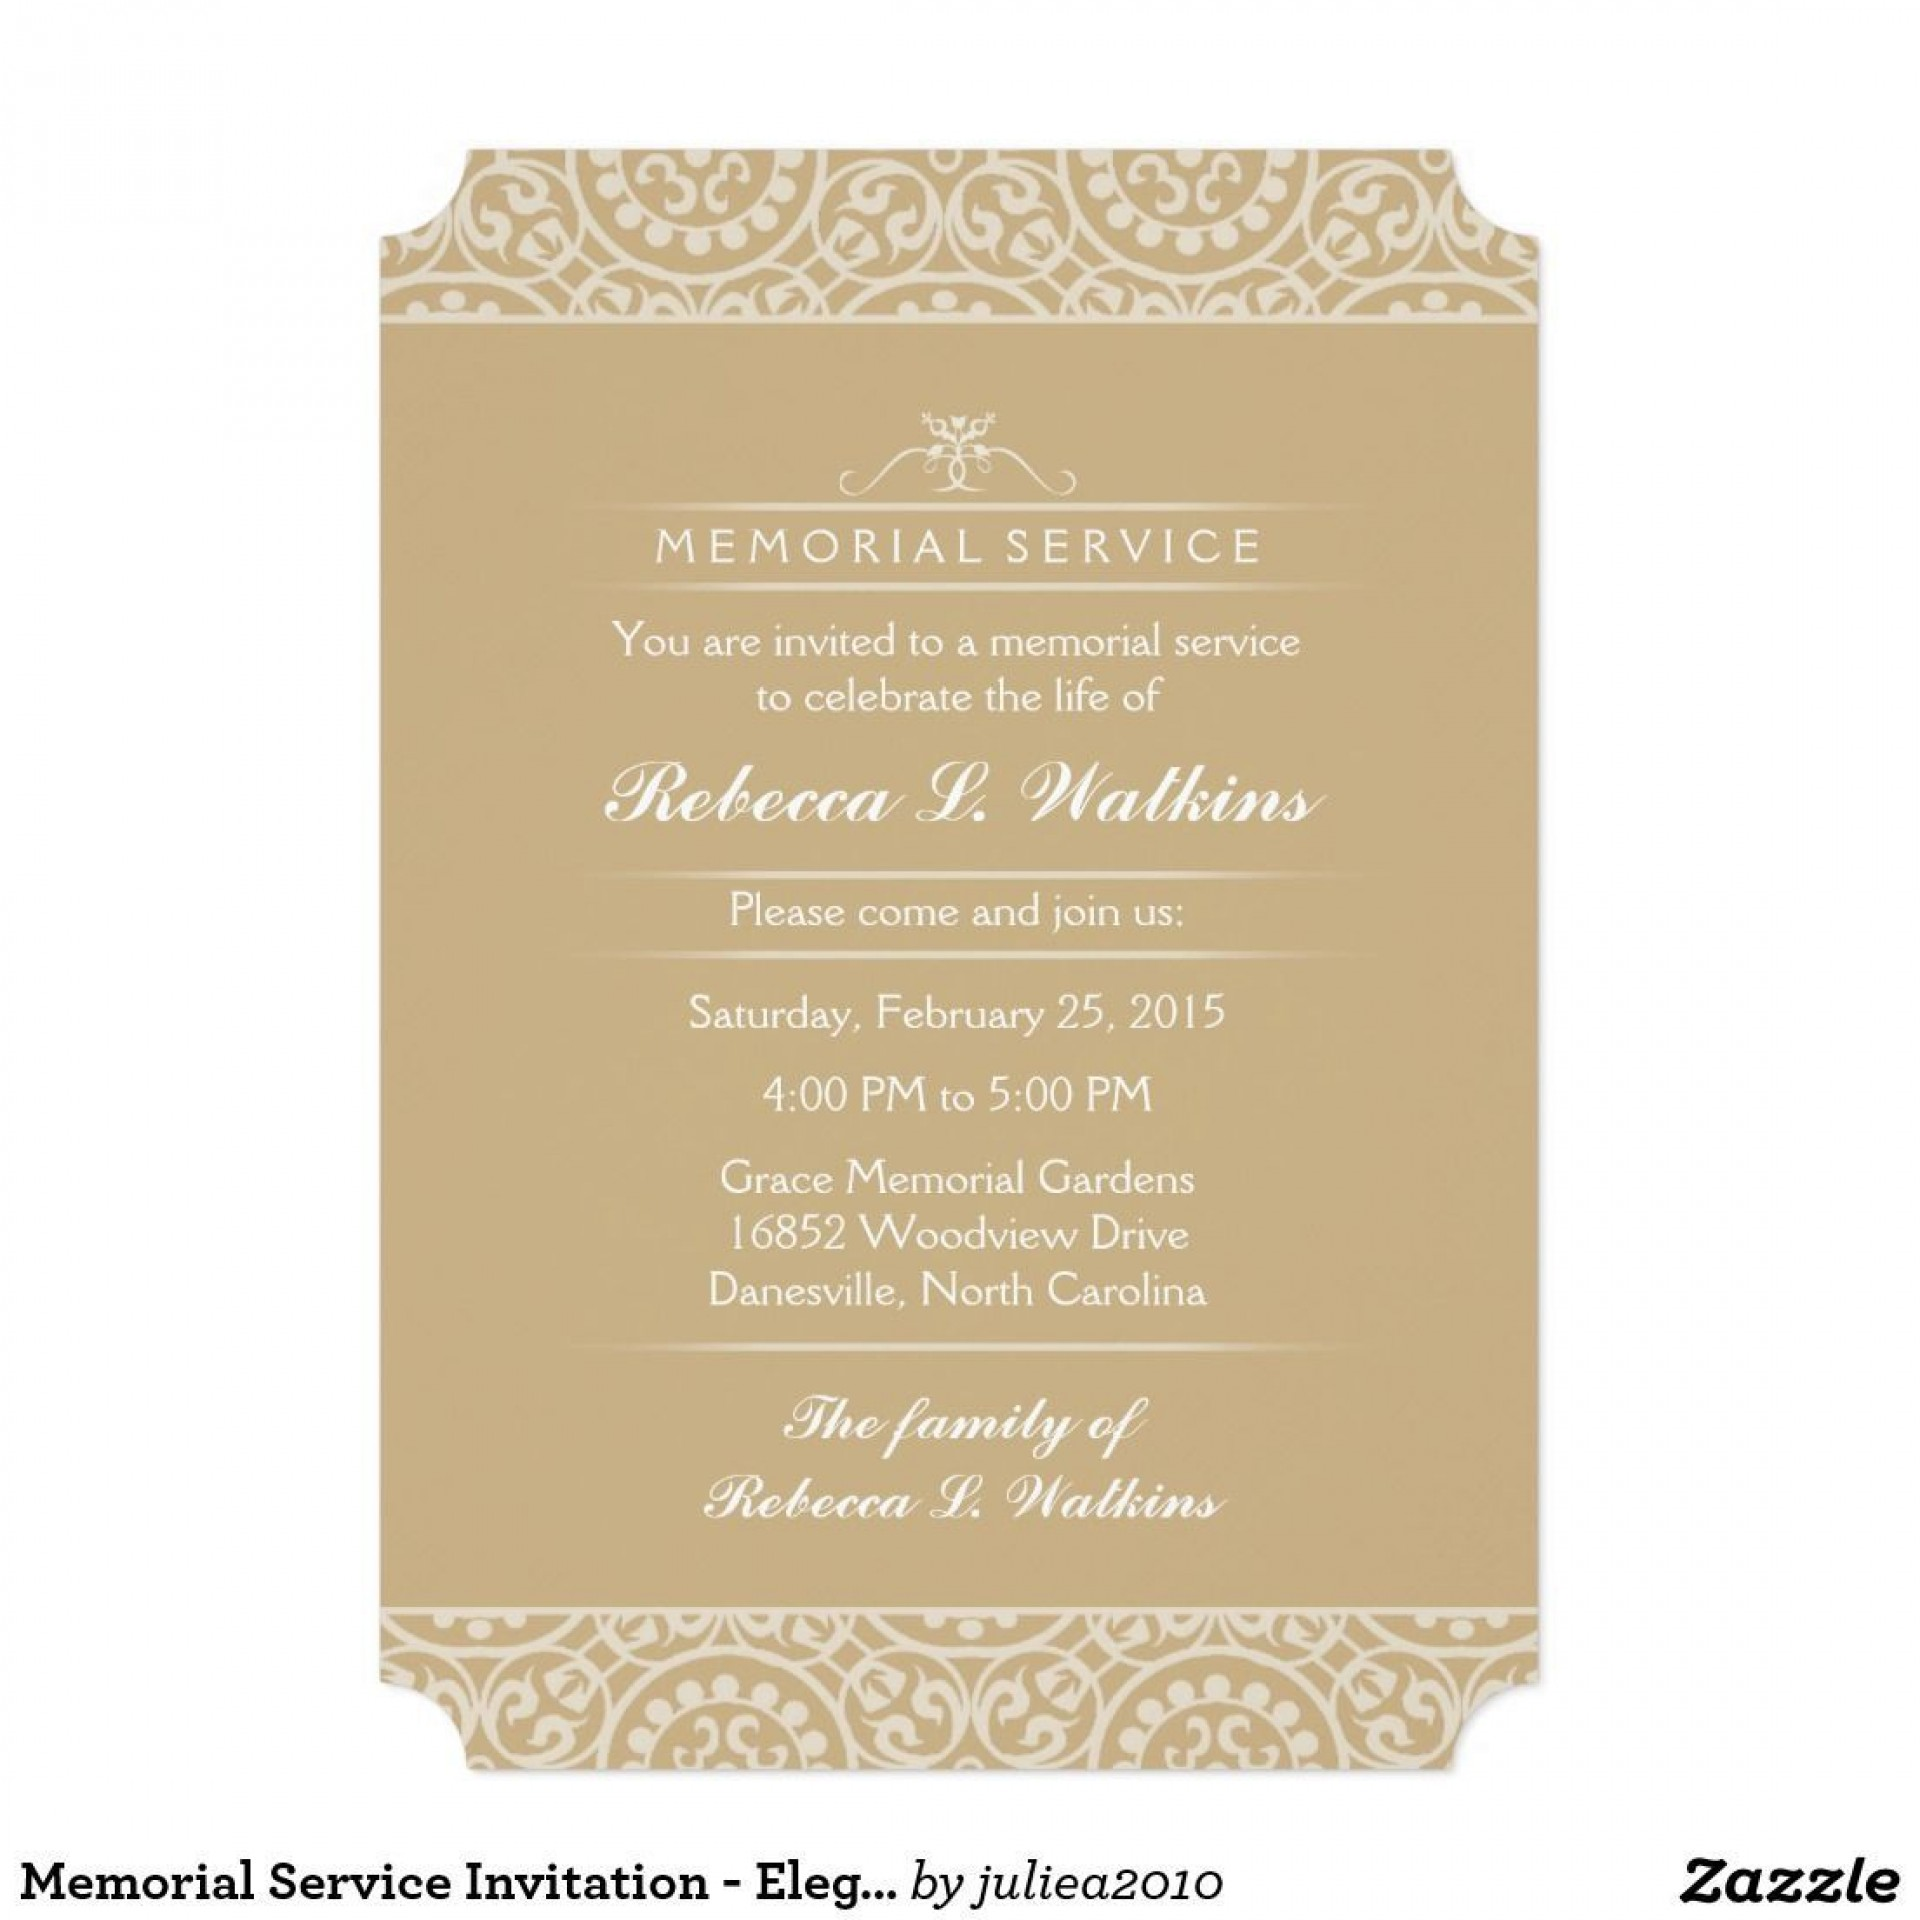 001 Awesome Funeral Invitation Template Free Design  Memorial Service Card Reception1920